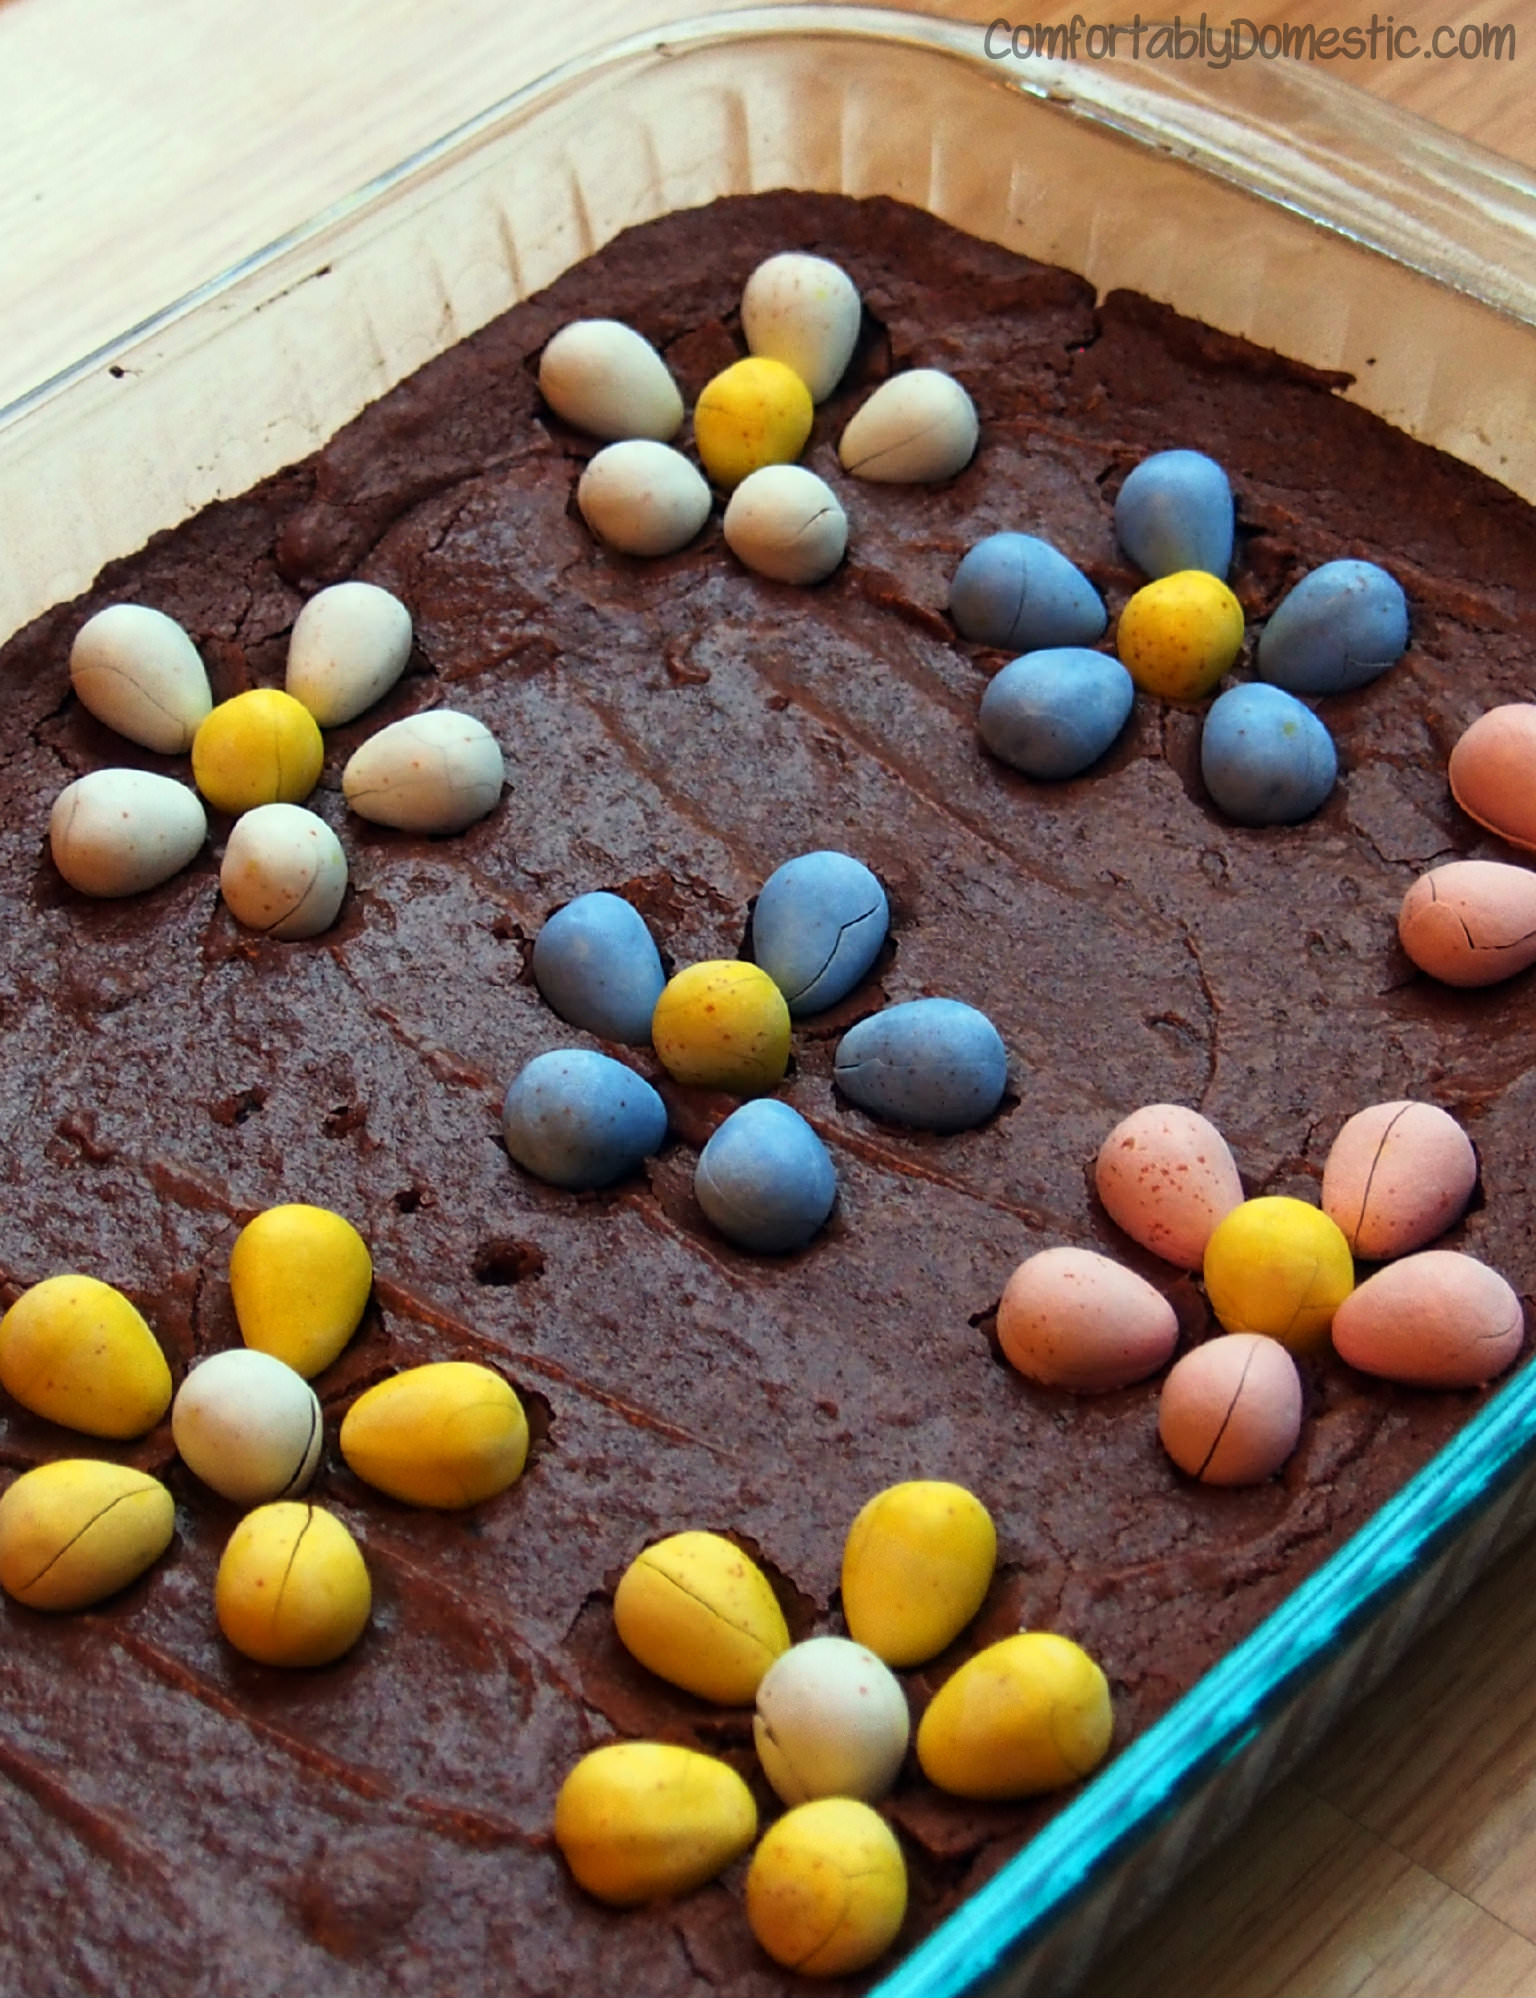 One Bowl Fudge Brownies from scratch, with Cadburry Mini Eggs | ComfortablyDomestic.com